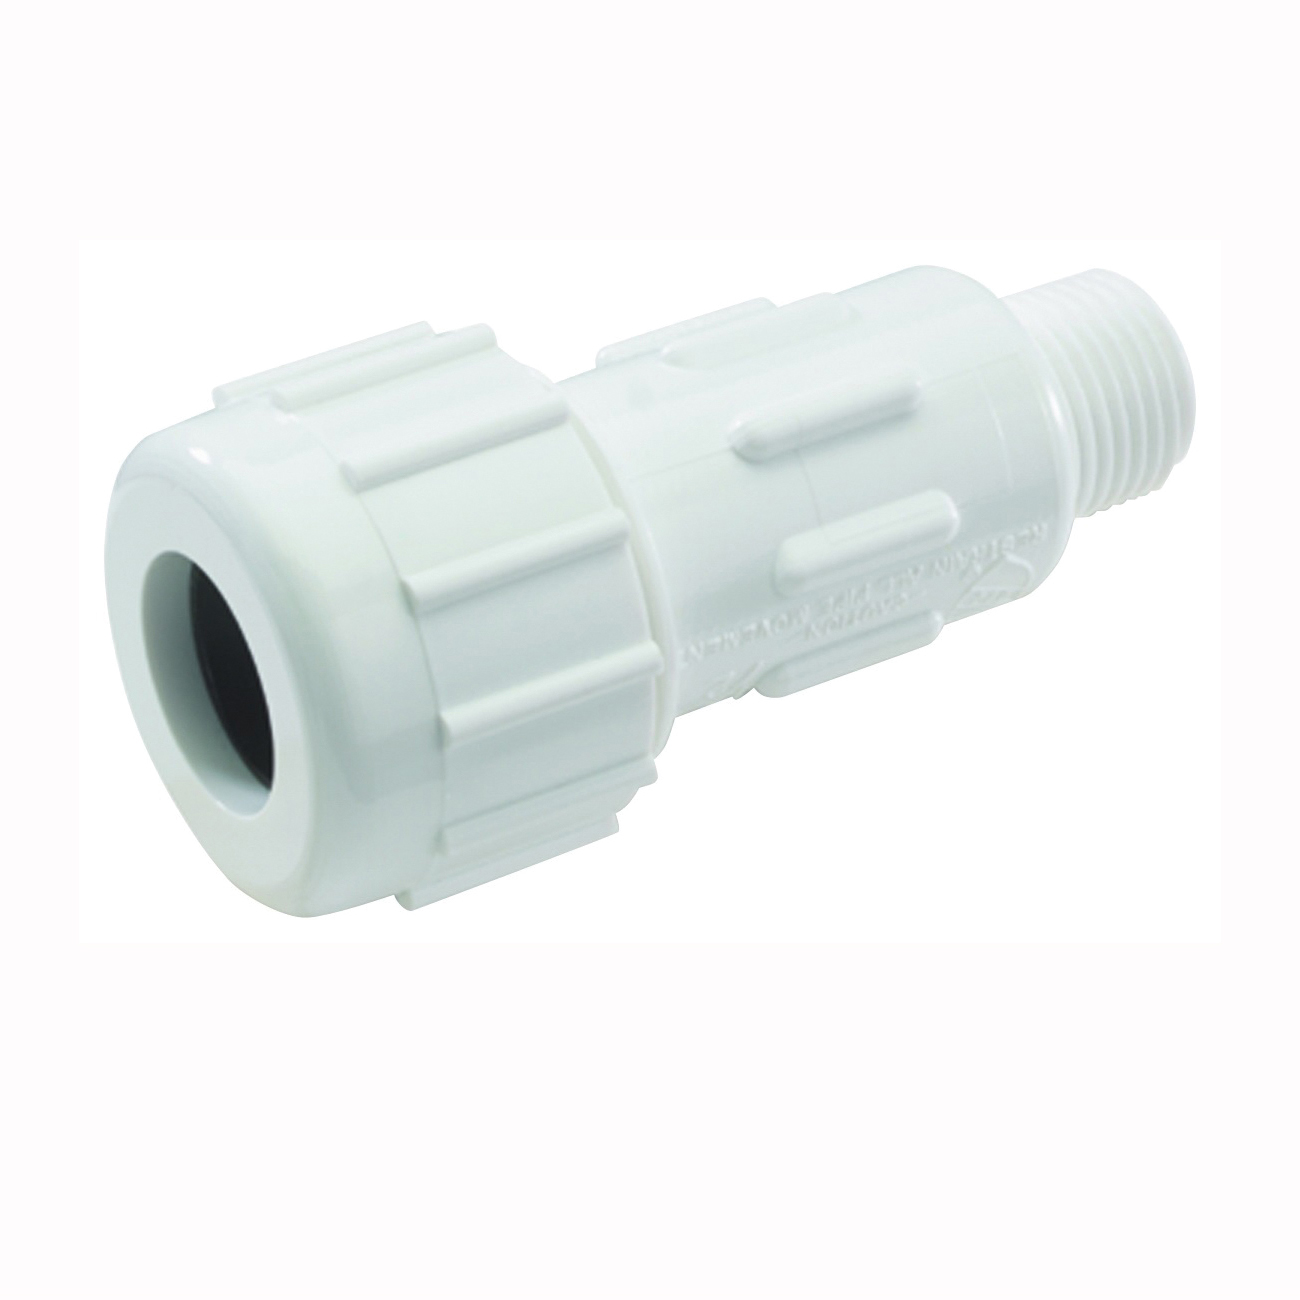 Picture of NDS CPA-0750 Pipe Adapter, 3/4 in, Compression x MPT, PVC, White, SCH 40 Schedule, 150 psi Pressure